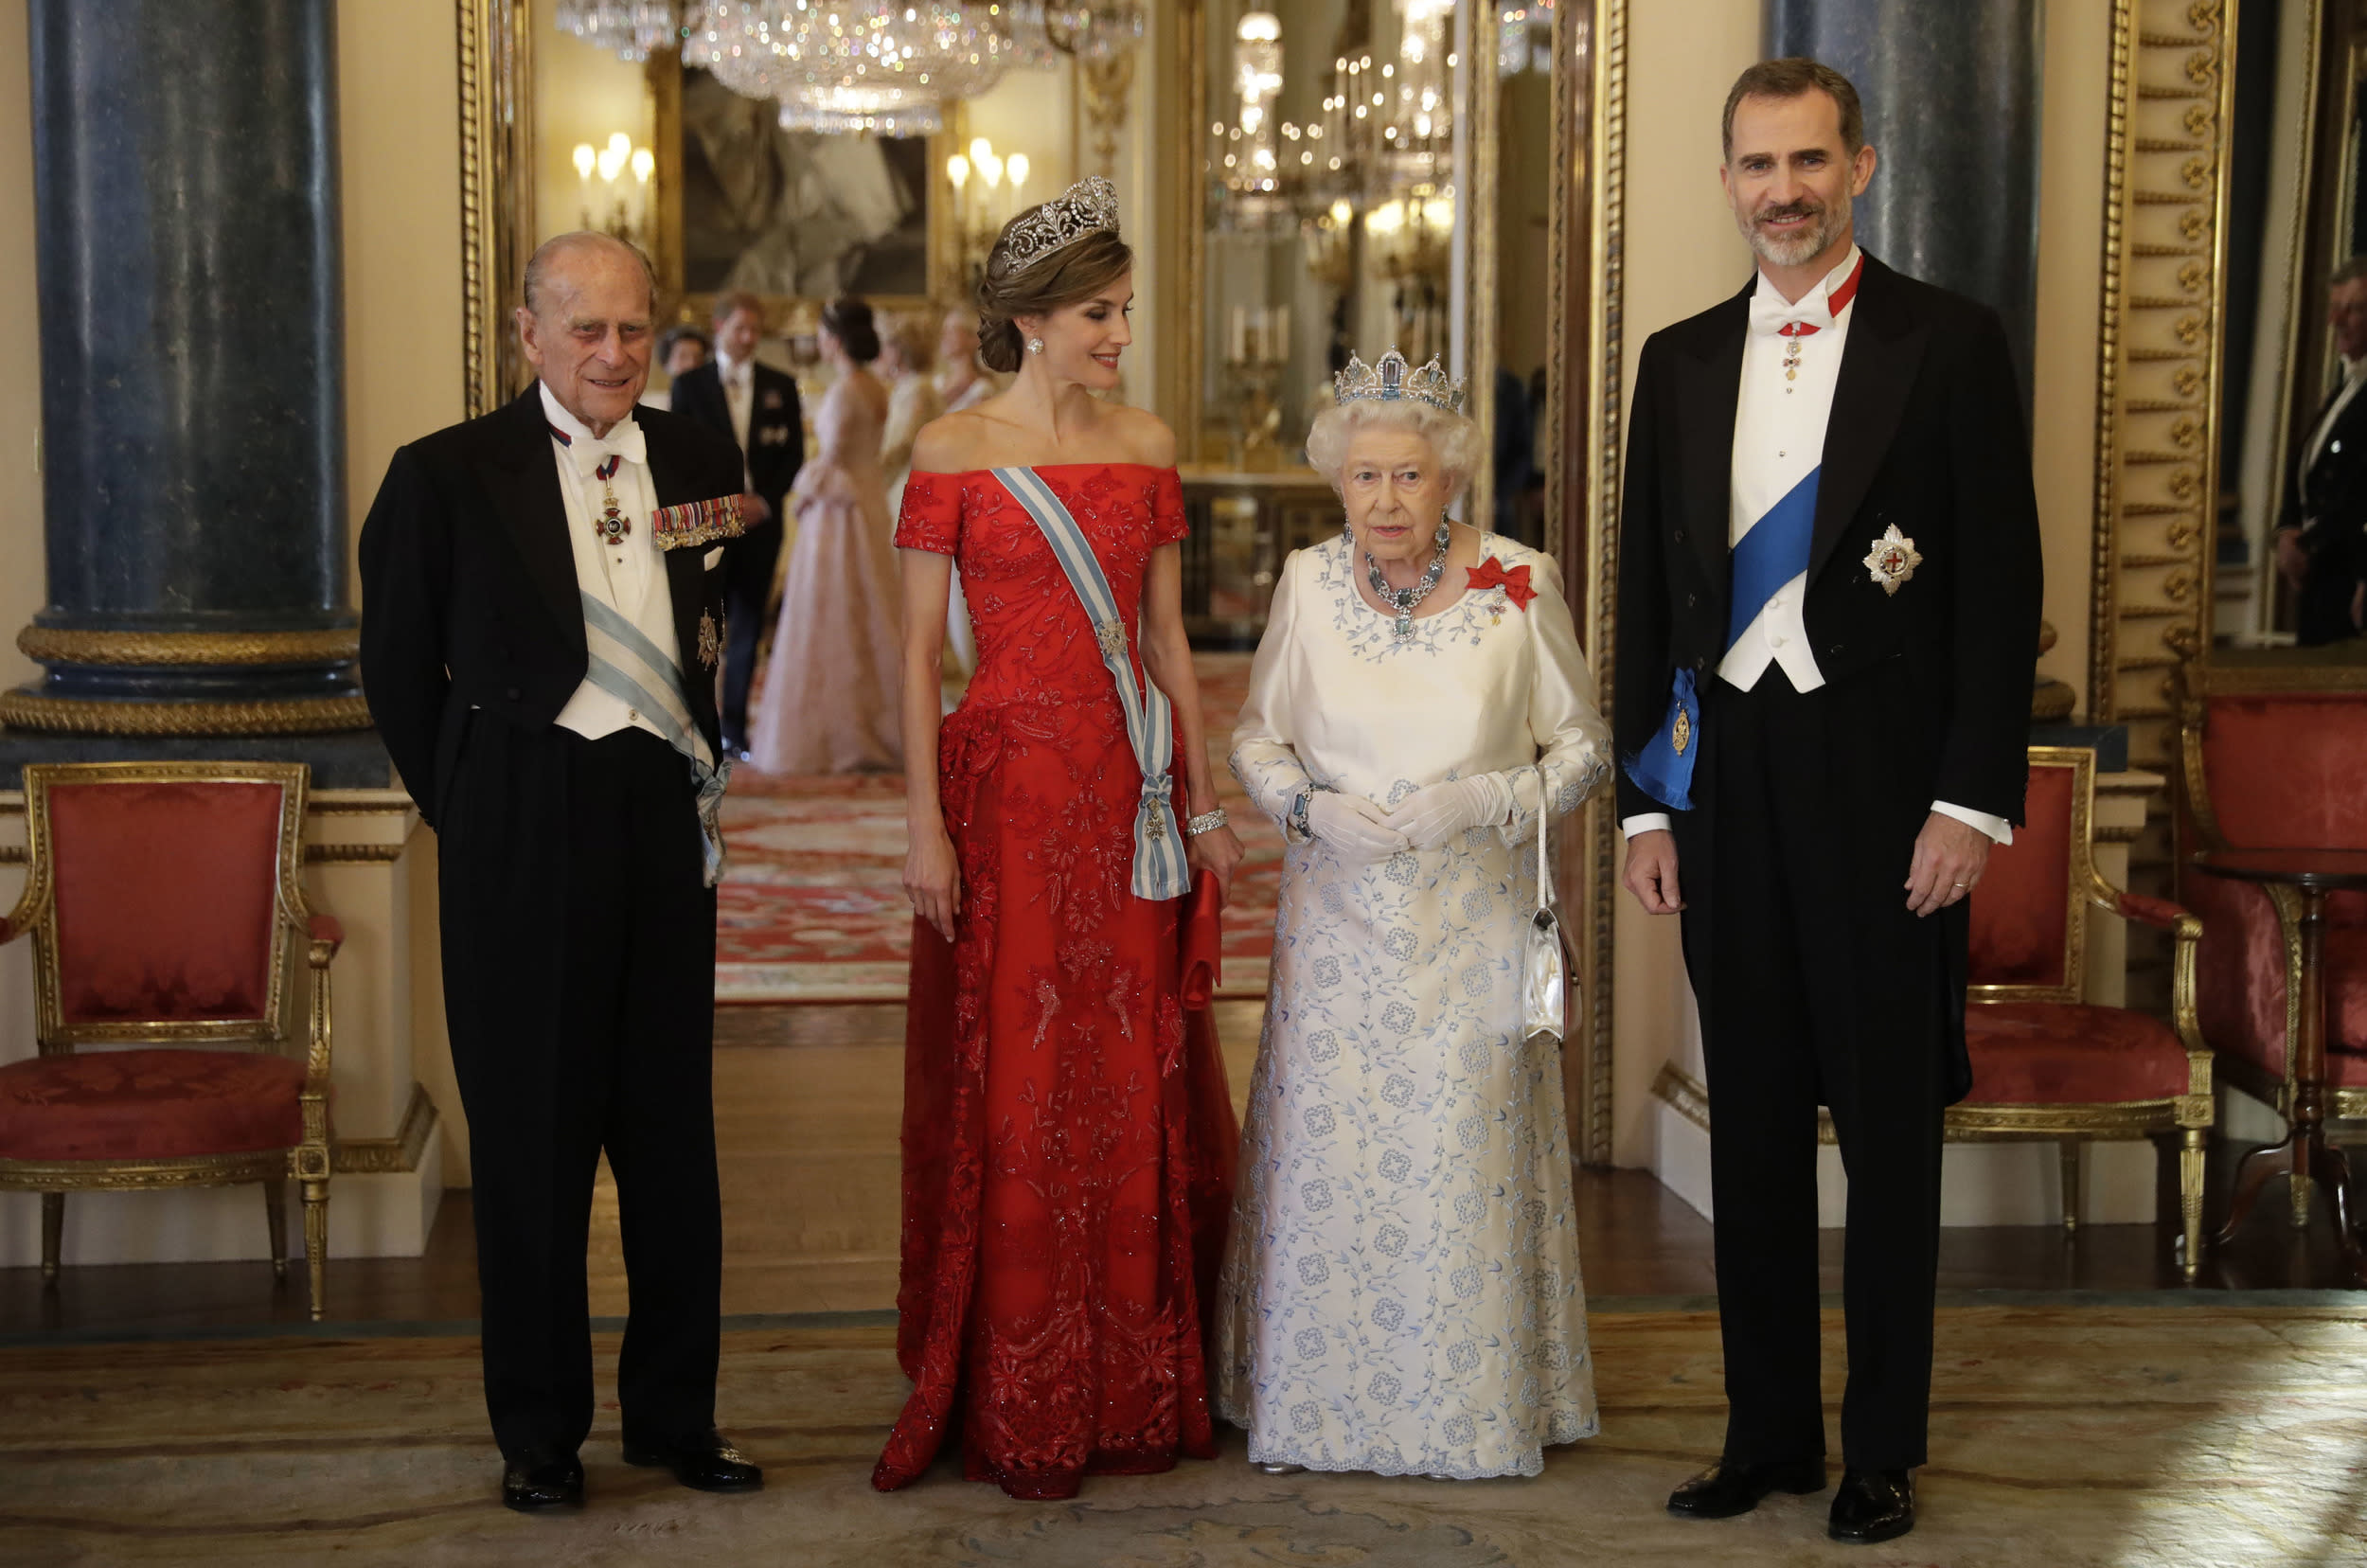 Queen Elizabeth II, her husband Prince Philip, Spain's King Felipe and his wife, Queen Letizia, pose for a group photograph before a State Banquet at Buckingham Palace in London, Wednesday, July 12, 2017. The king and queen of Spain are on a three day State Visit to Britain. (AP Photo/Matt Dunham, Pool)